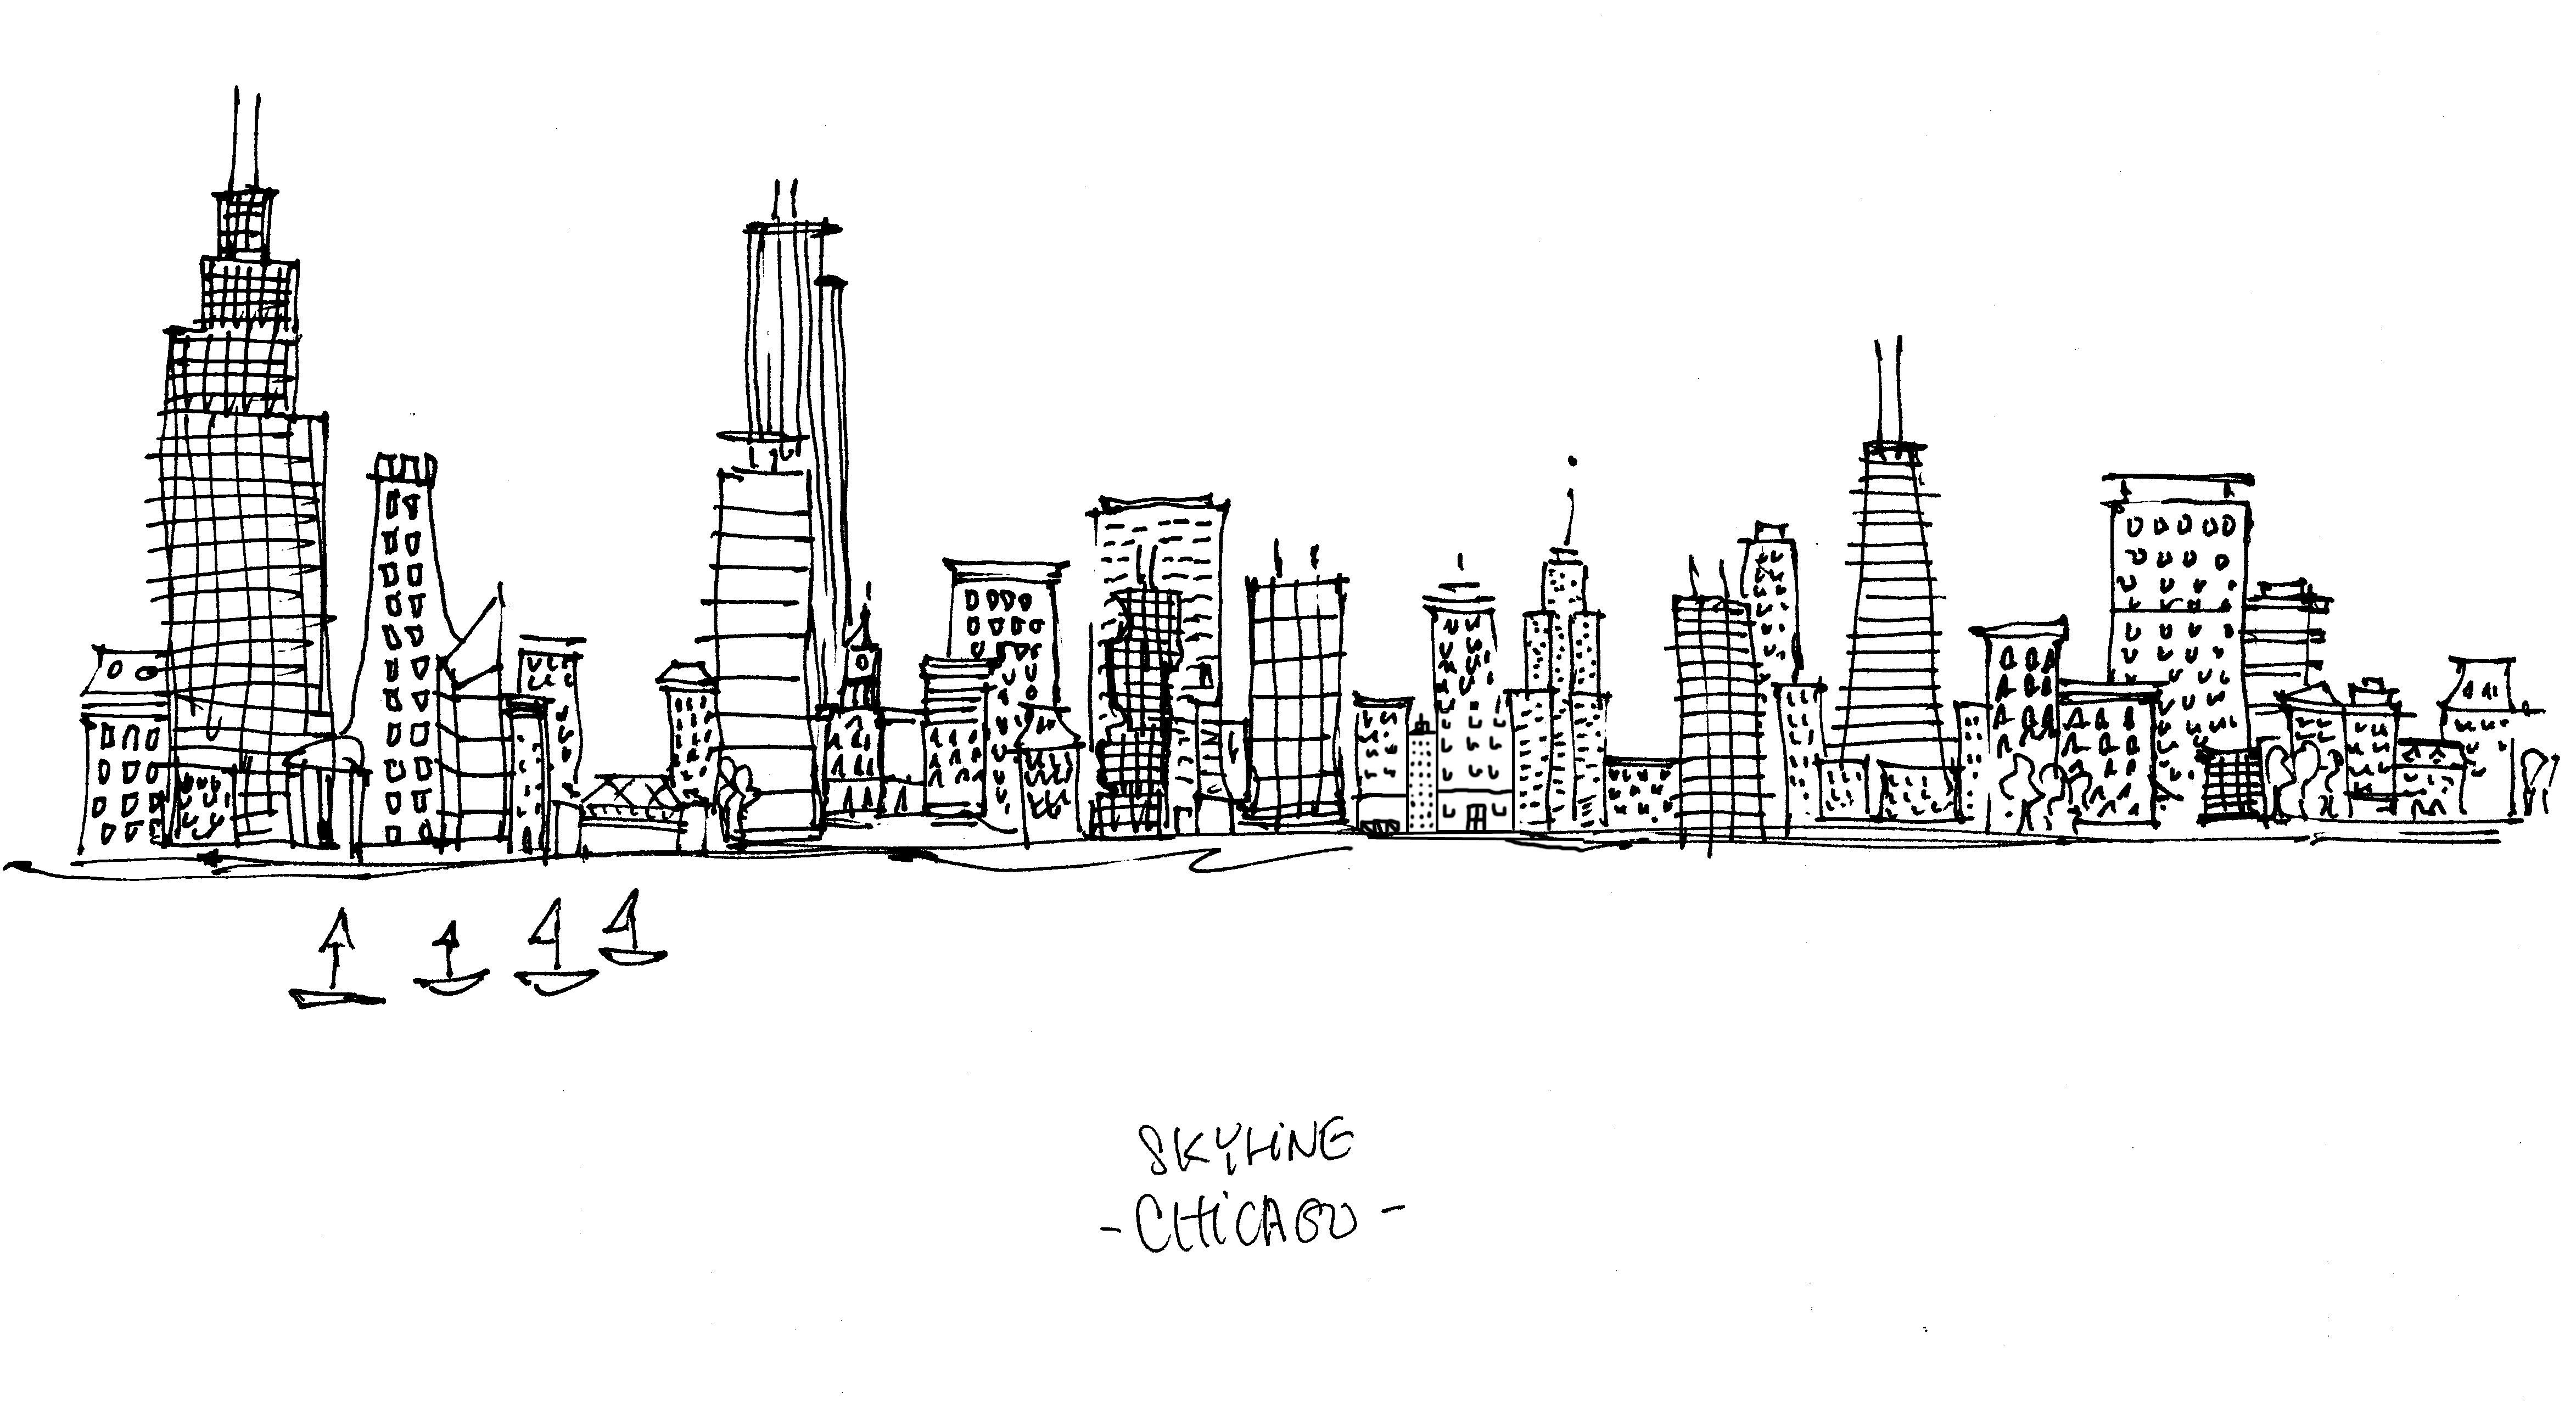 chicago skyline coloring page chicago skyline coloring page coloring skyline page chicago